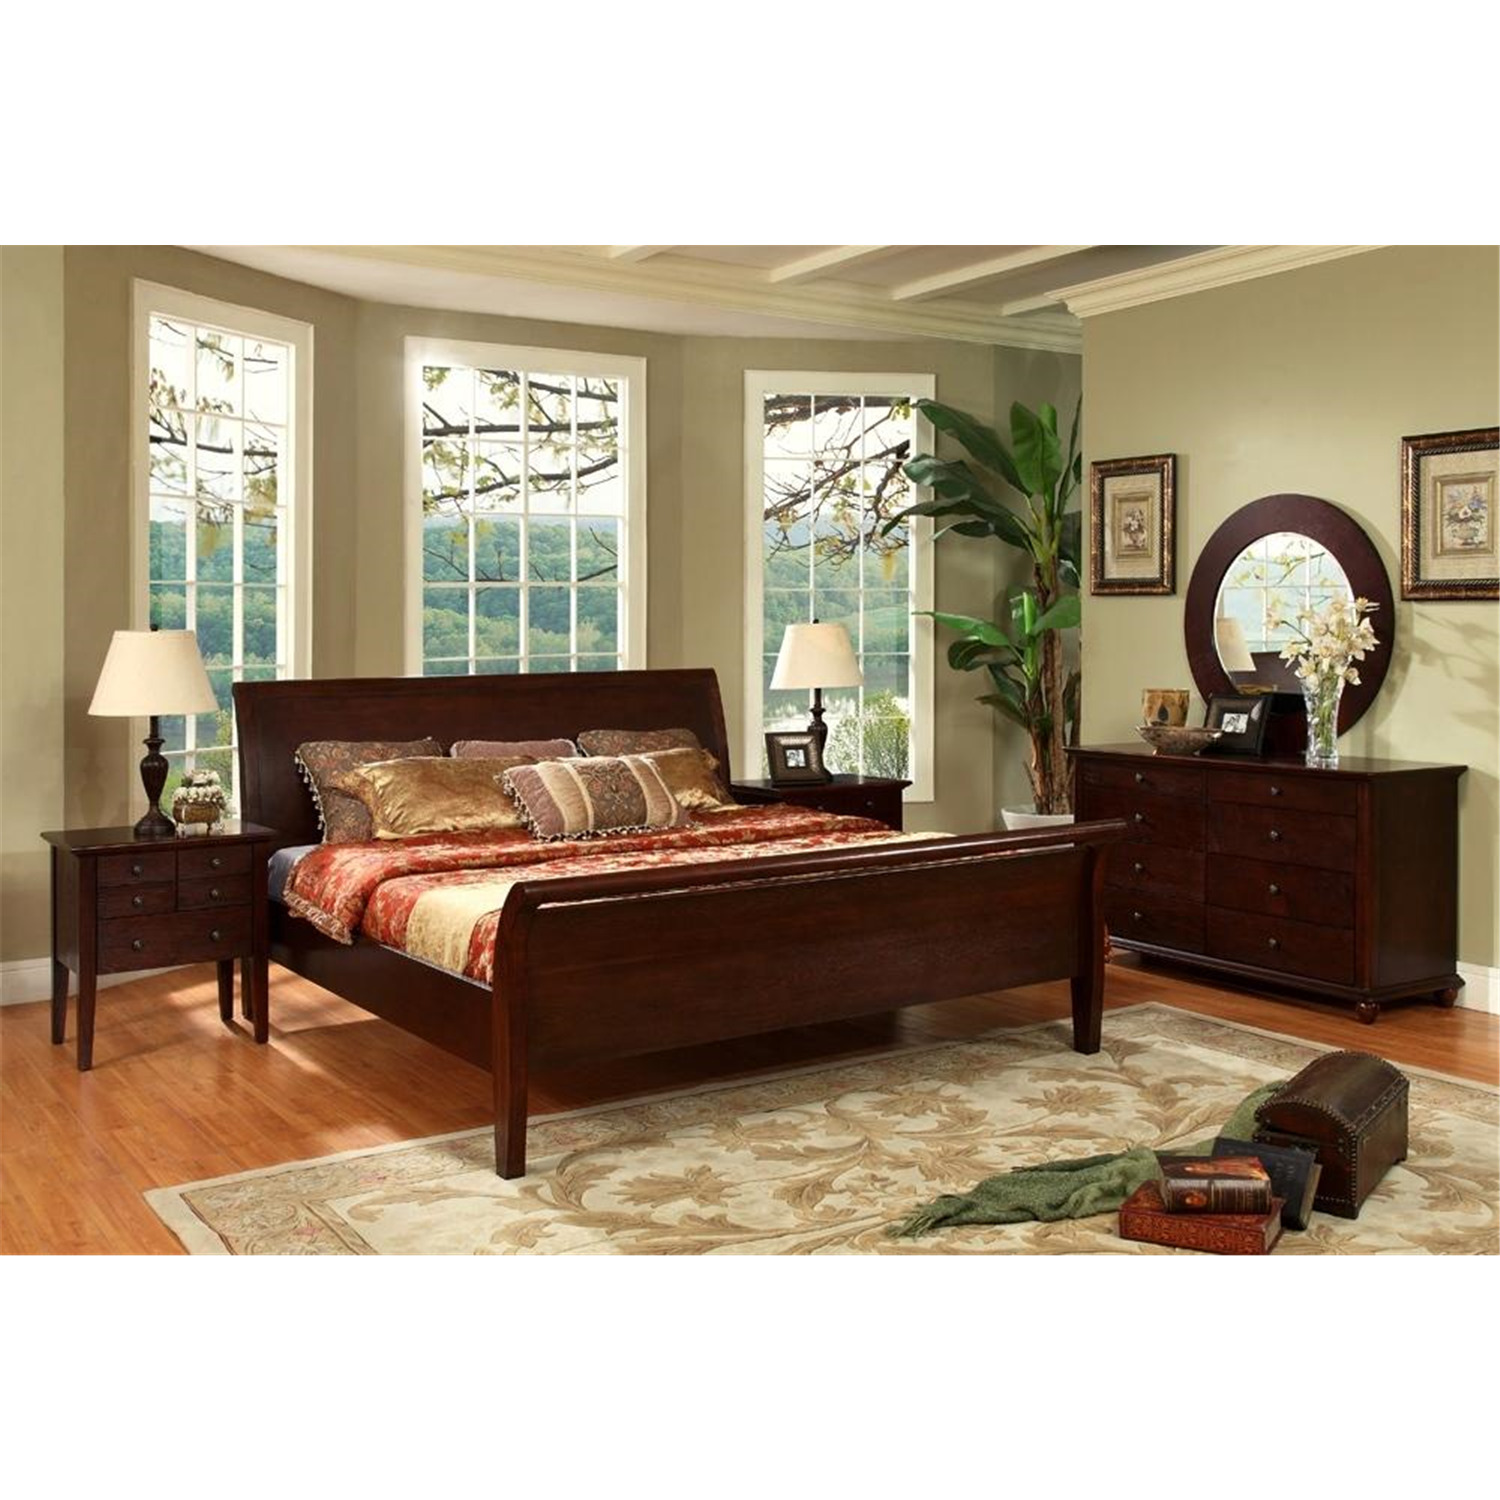 abbyson living 5 piece queen bedroom set by oj commerce